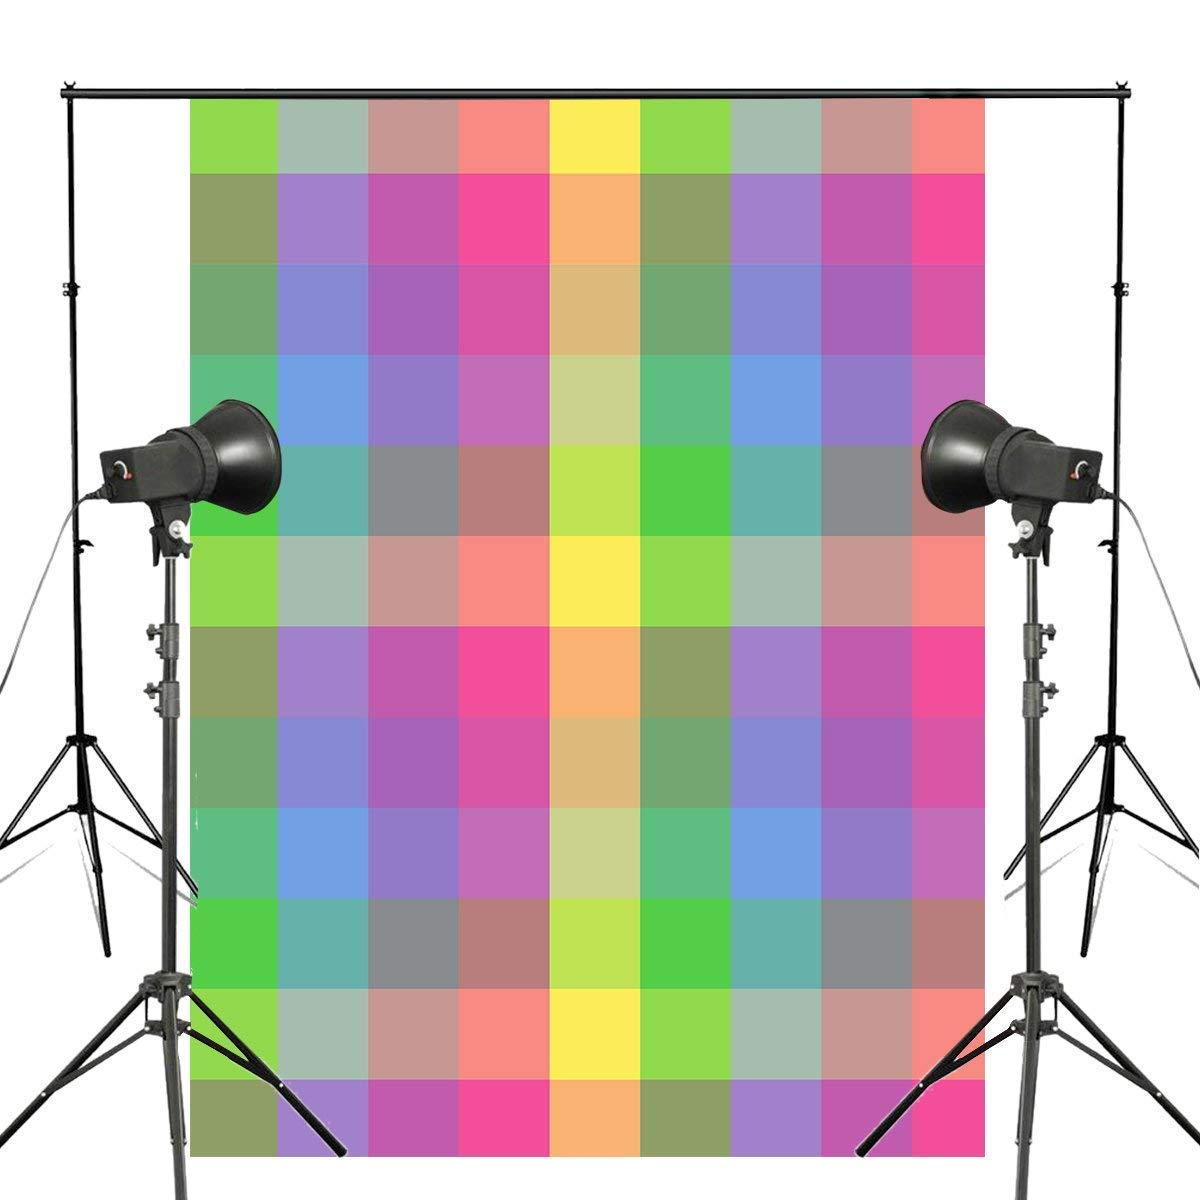 ERTIANANG 150x220cm Cute Colorful Checkered Photography Backdrop Abstract Checkered Background Kids Photo Studio Backdrop Wall